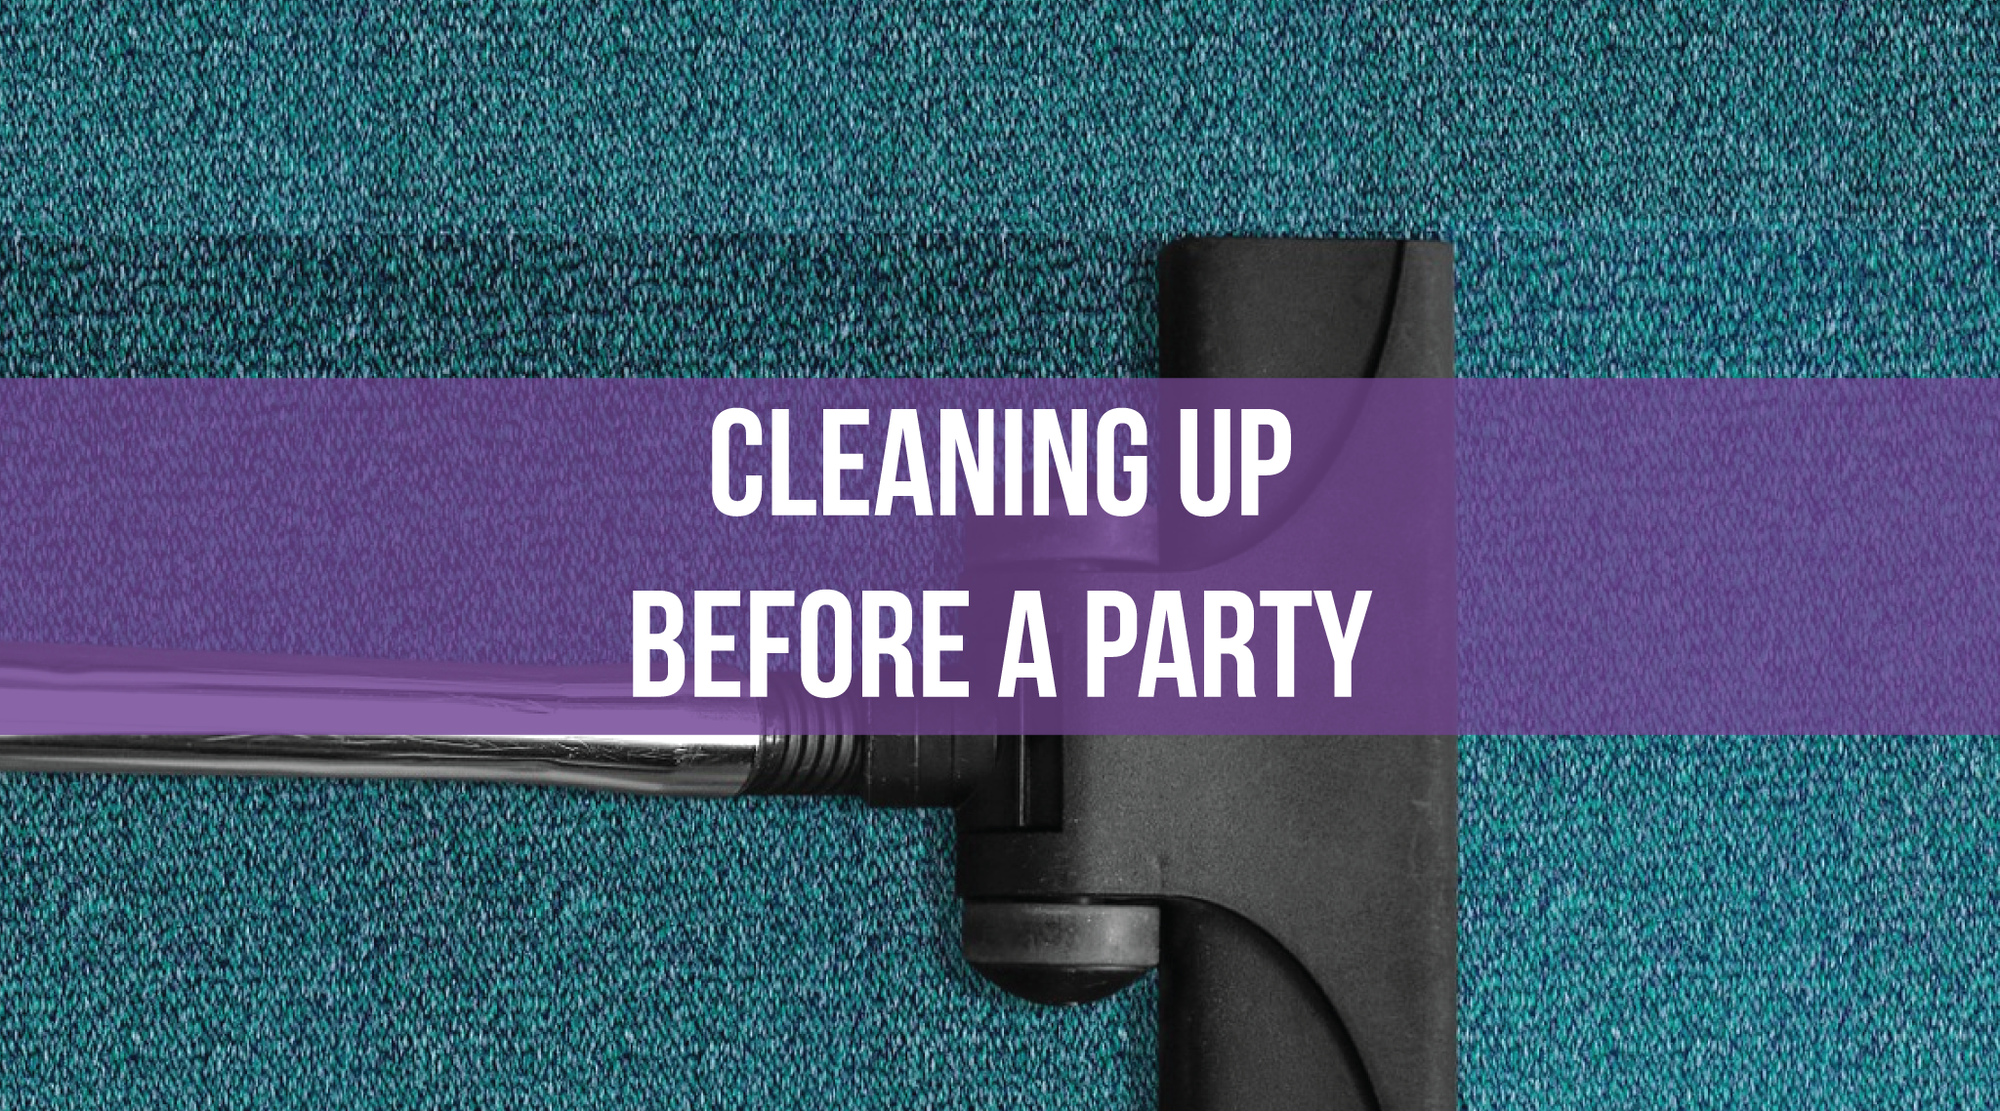 Cleaning up before a party